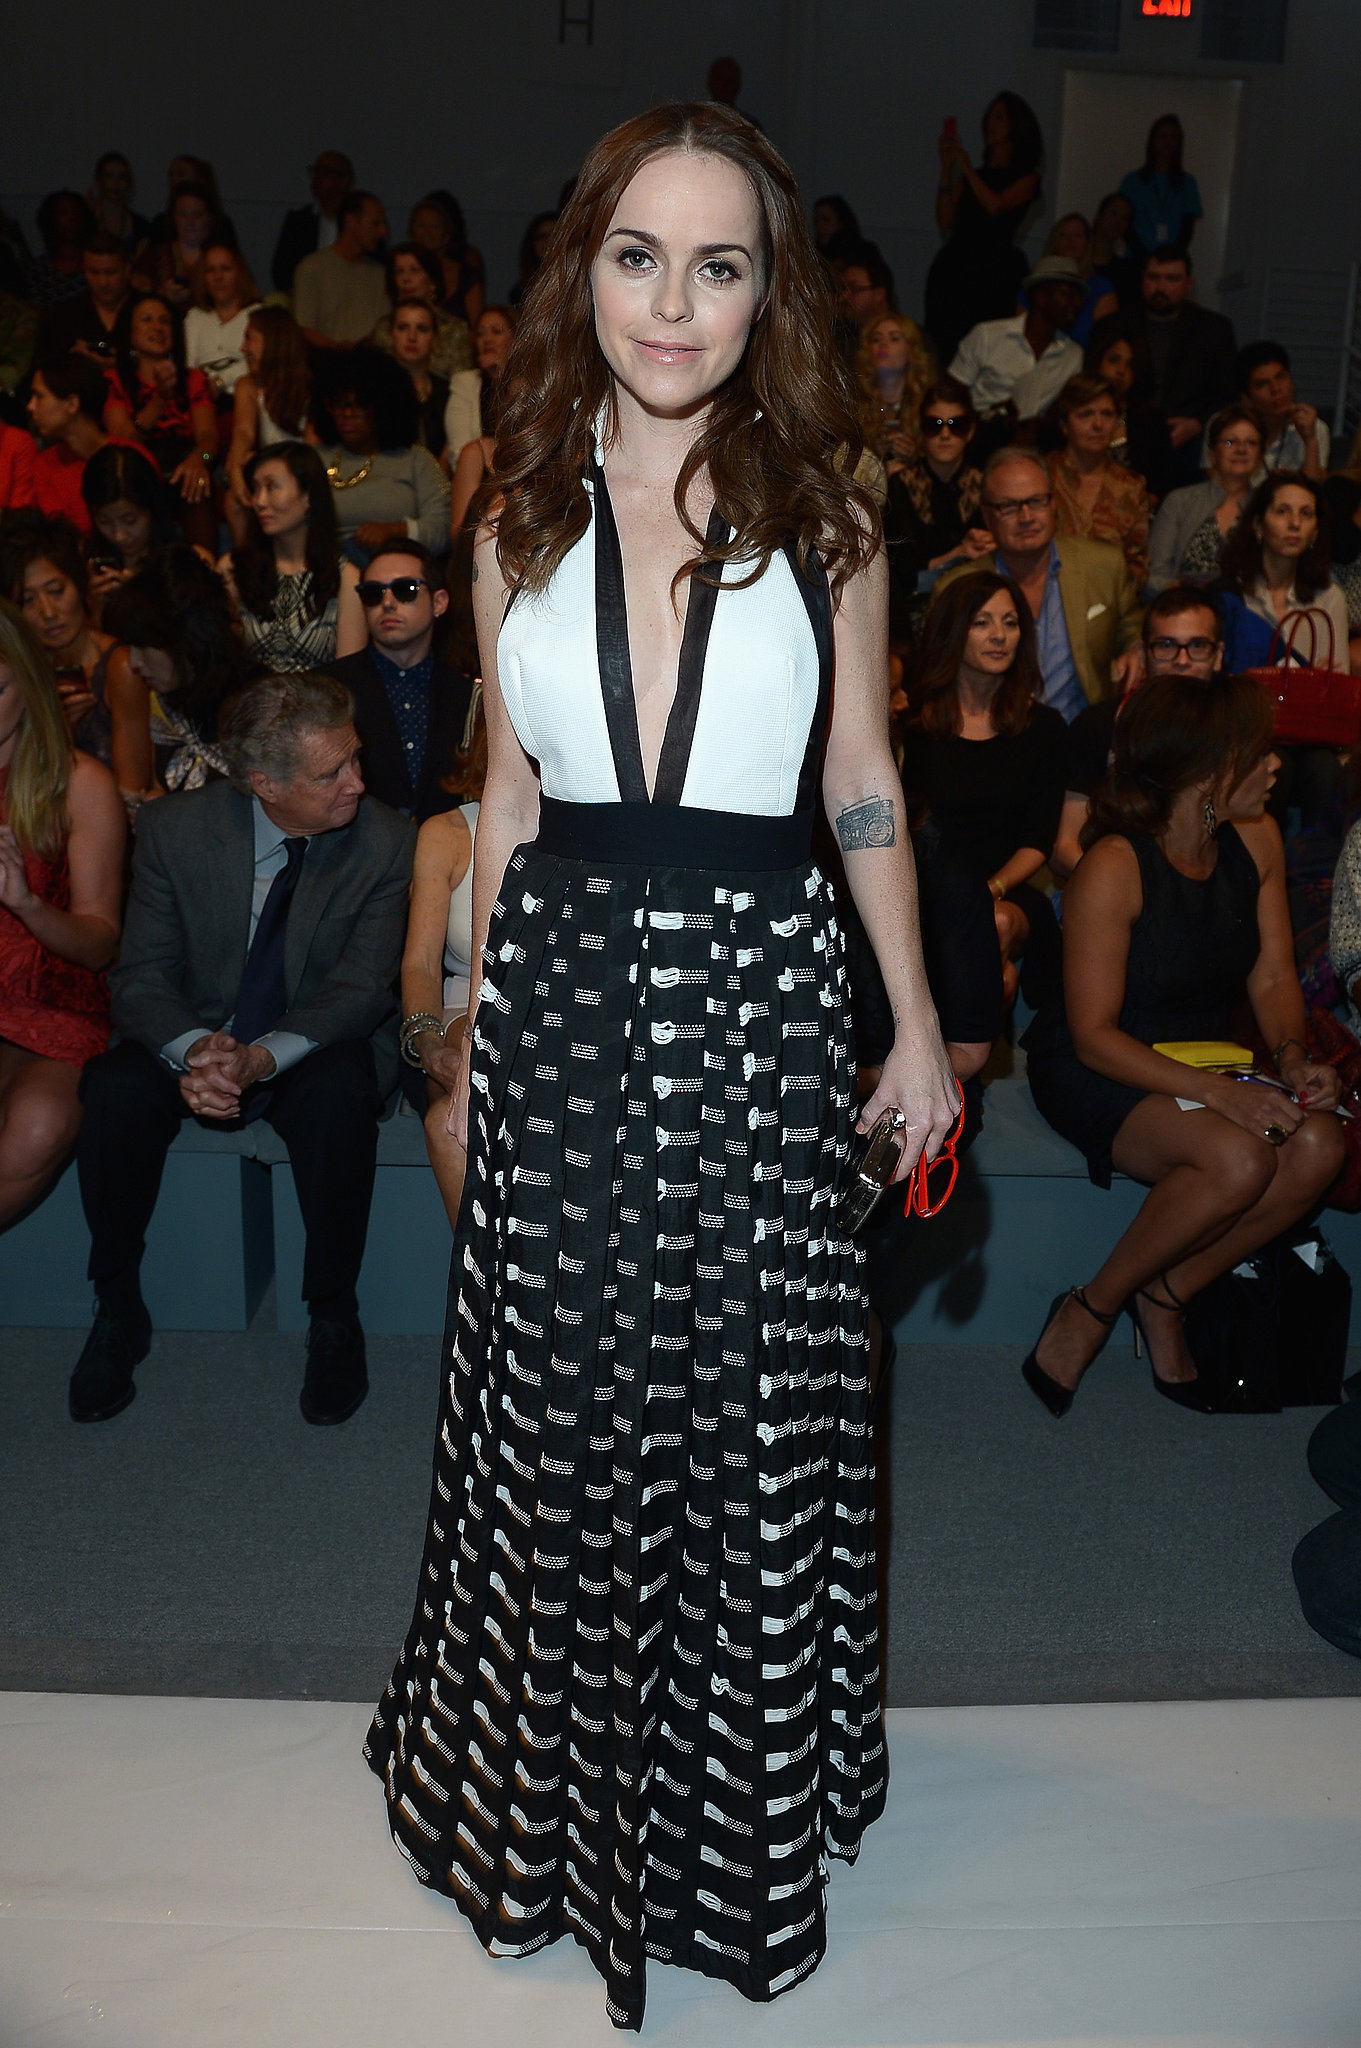 Taryn Manning's black-and-white maxi dress stood out front row at Carmen Marc Valvo.